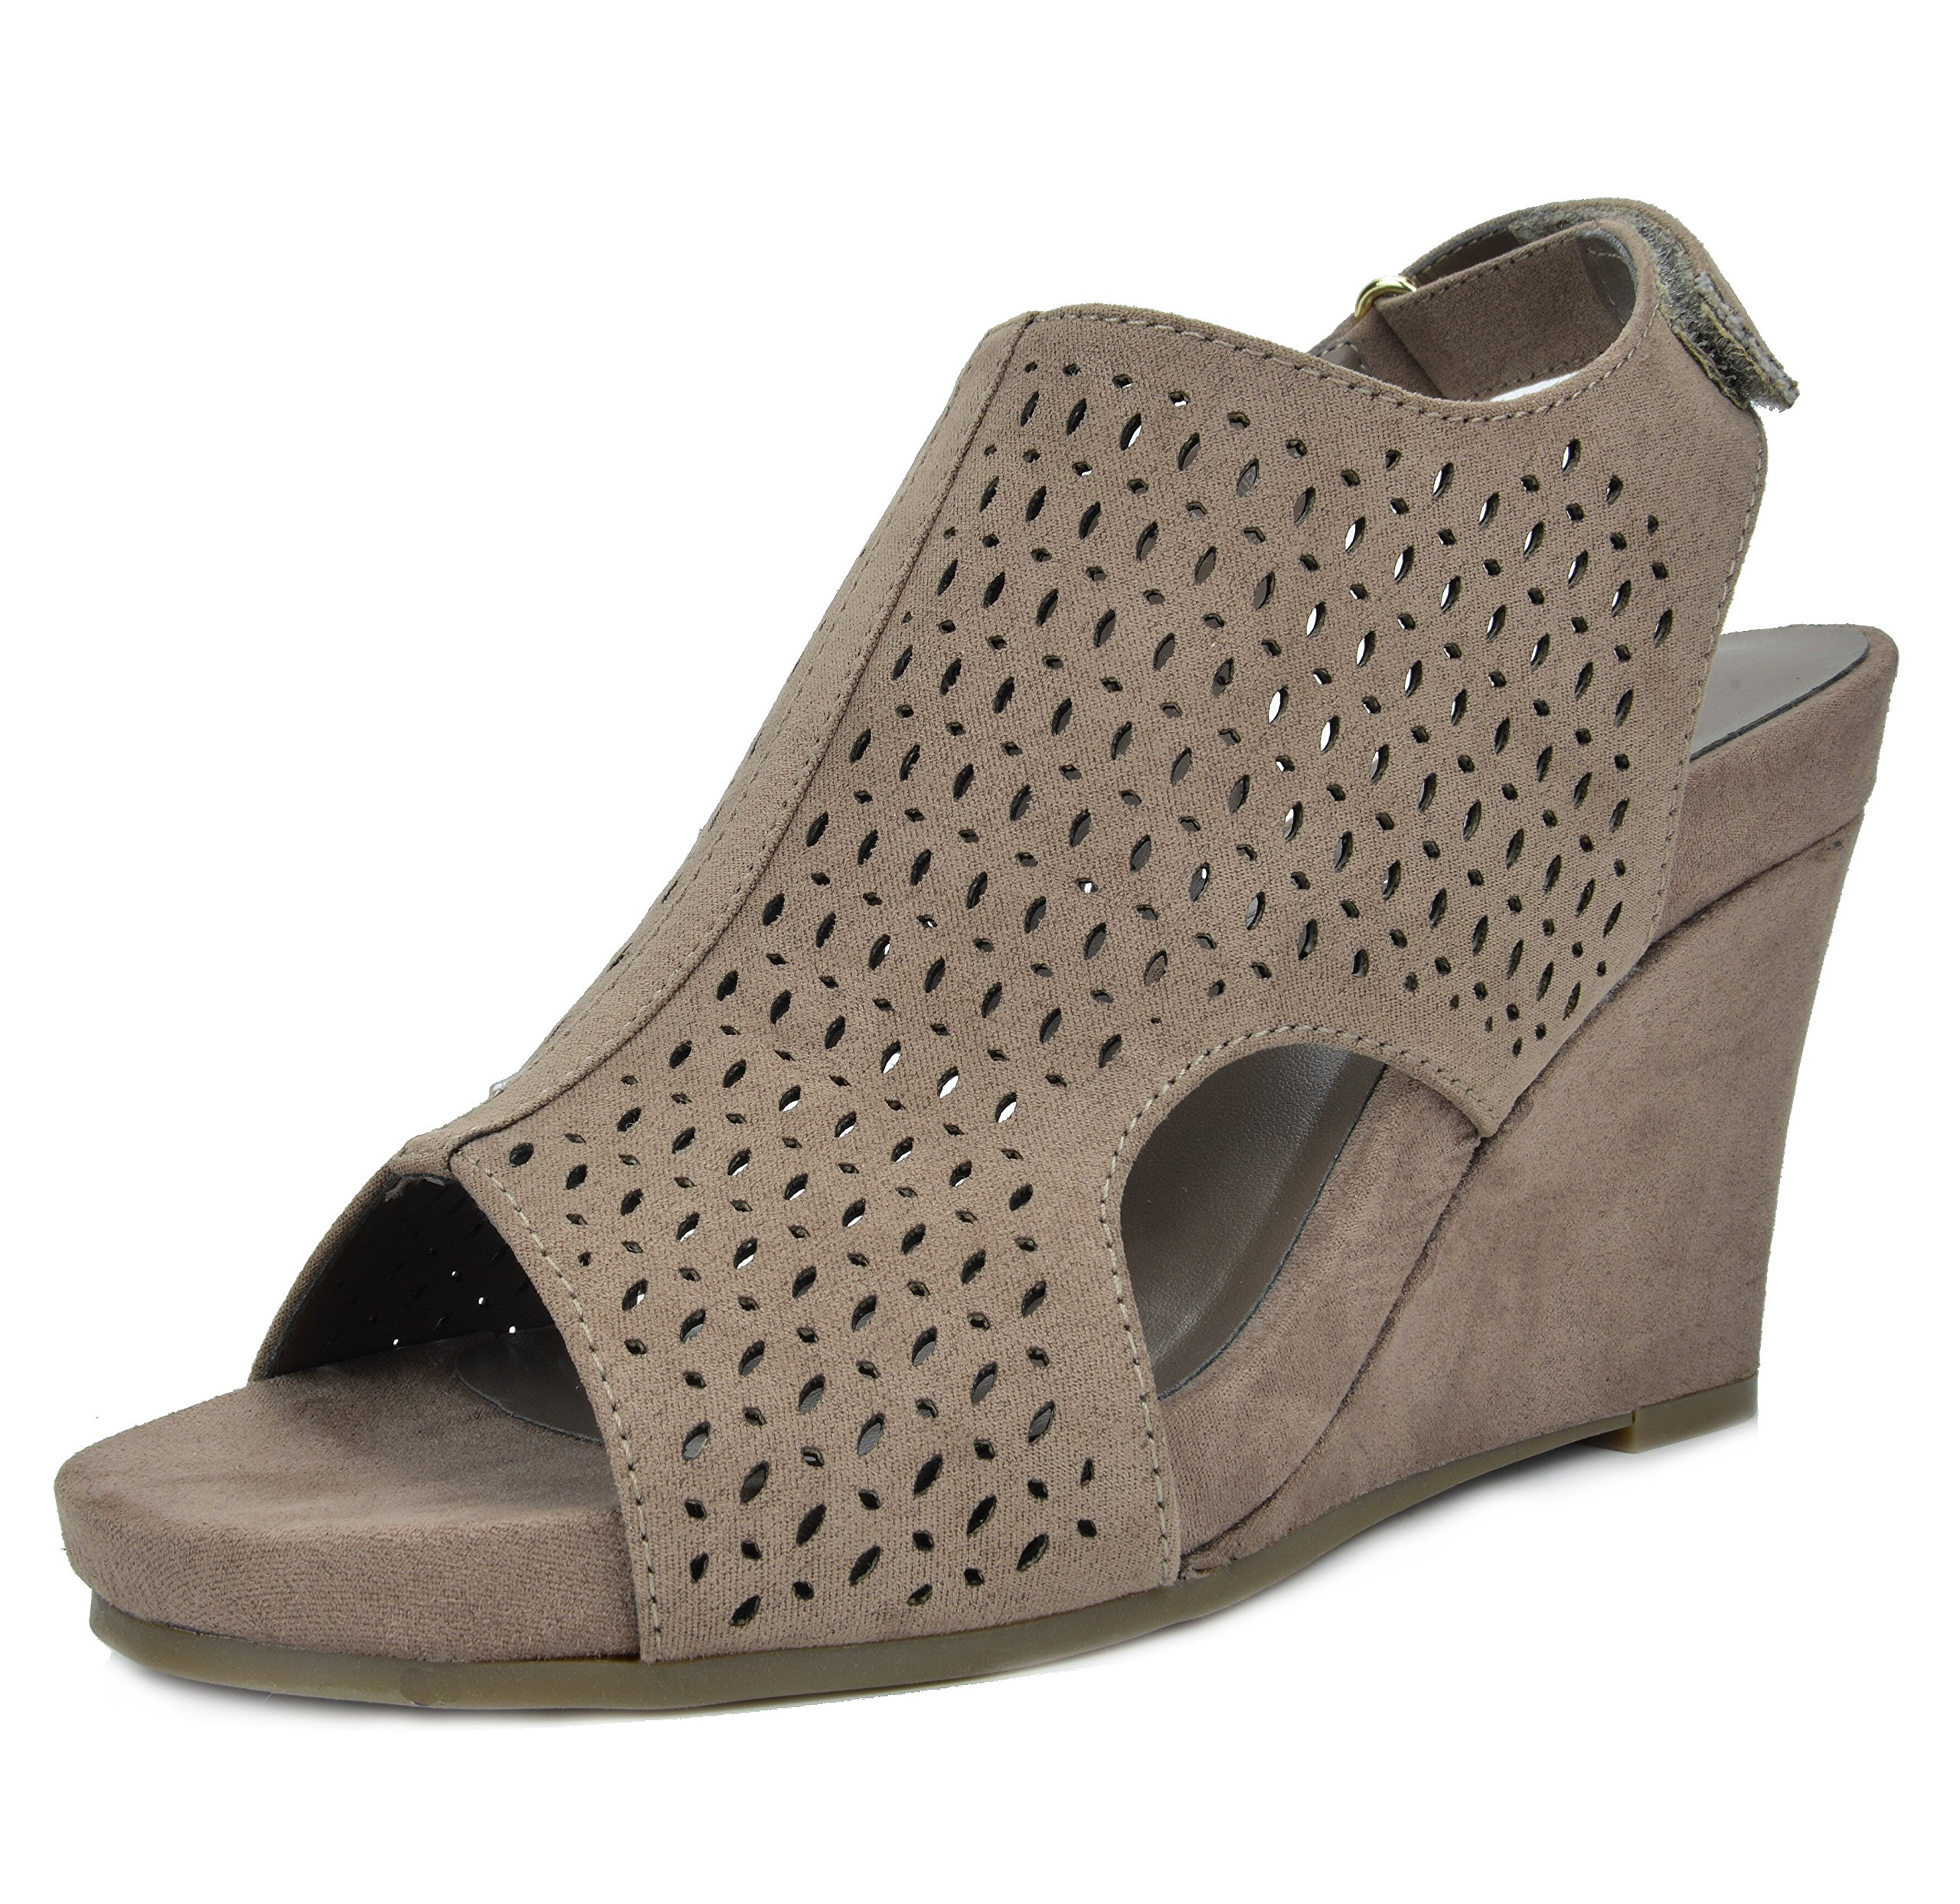 TOETOS Women's Solsoft-6 Taupe Mid Heel Platform Wedges Sandals - 9.5 M US